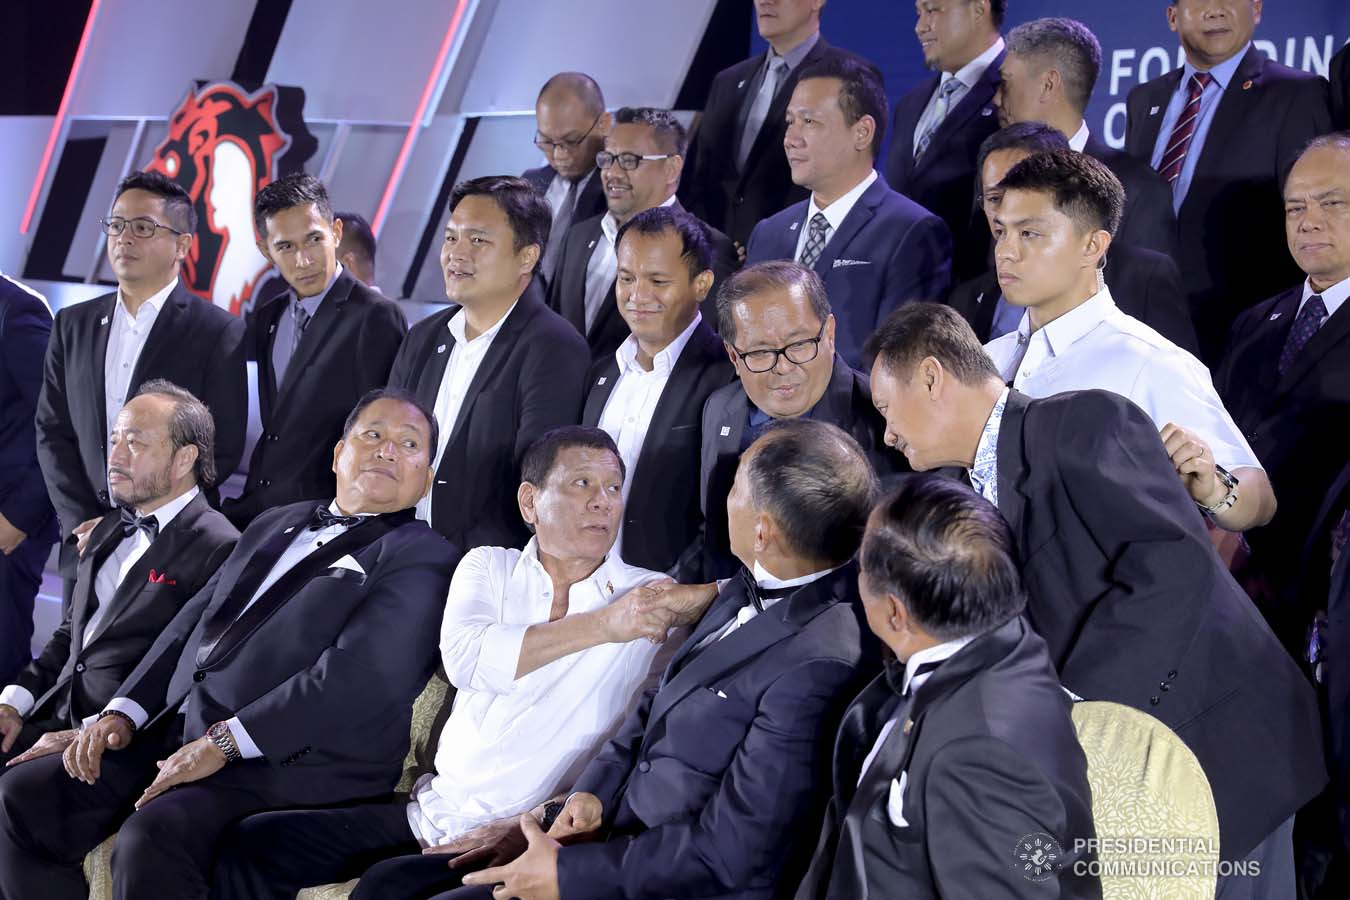 President Rodrigo Roa Duterte greets one of the members of the Lex Talionis Fraternitas Inc. as they celebrate their 50th anniversary at The Manila Hotel on September 25, 2019. ALFRED FRIAS/PRESIDENTIAL PHOTO